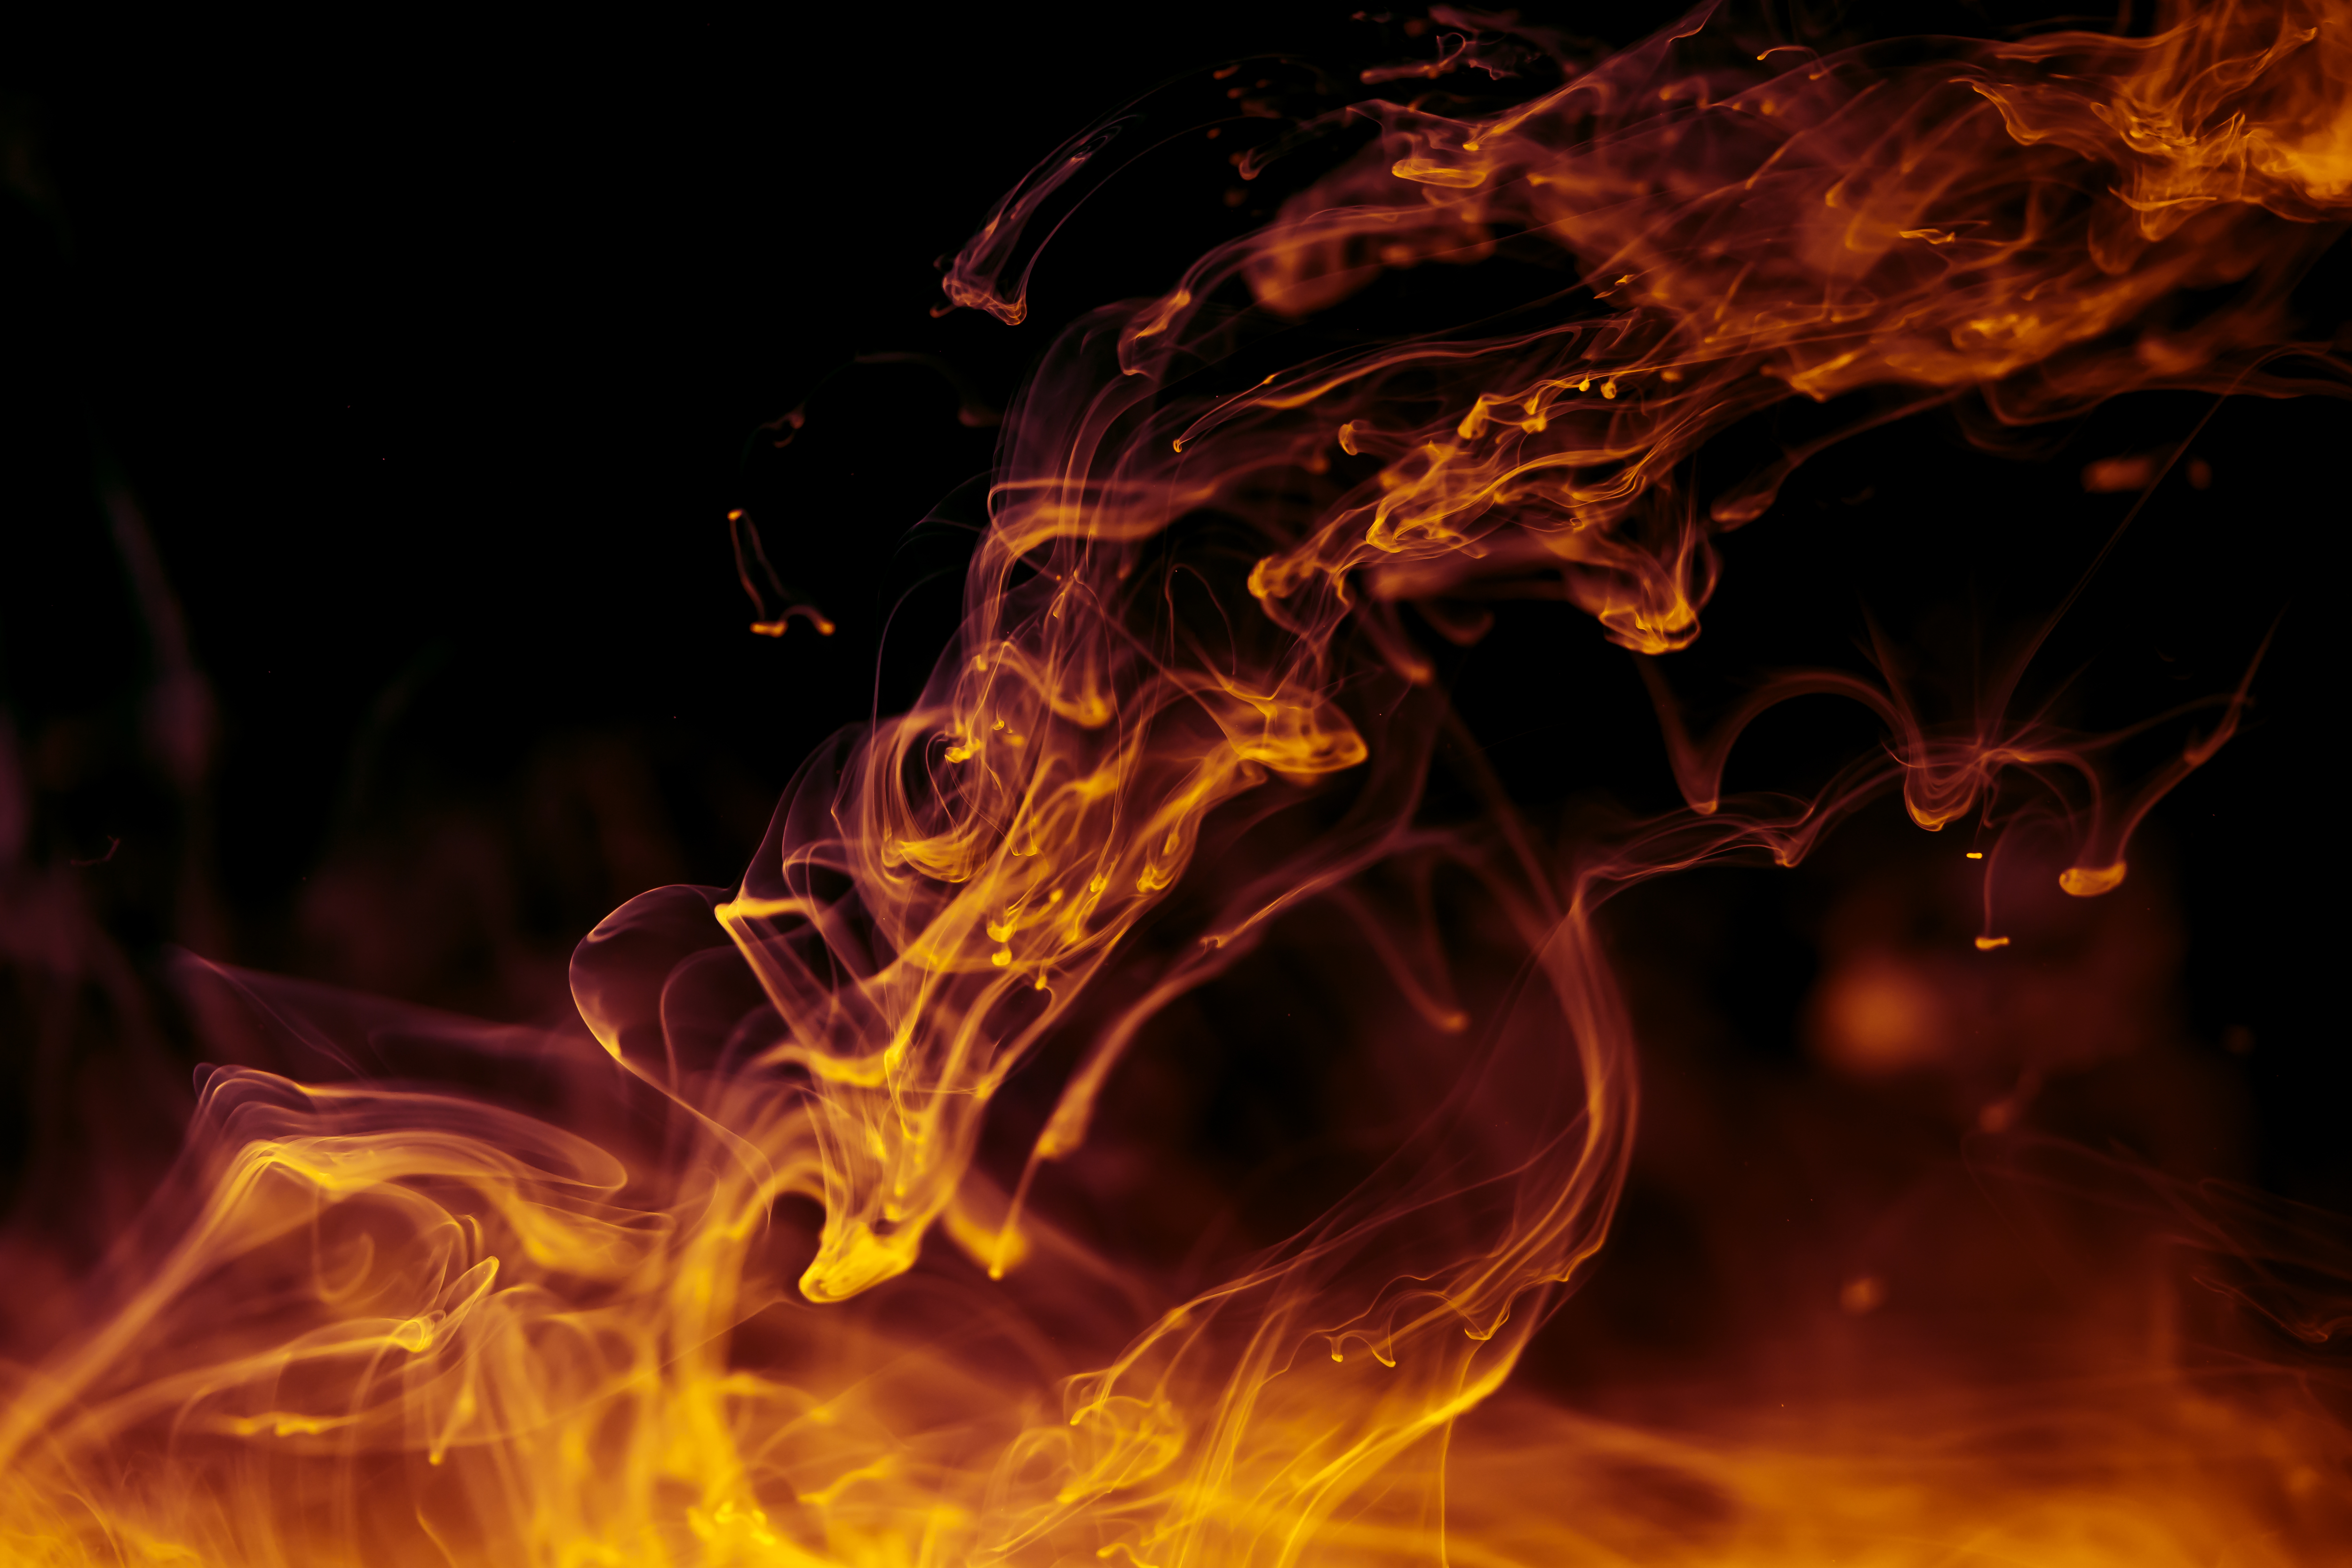 abstract-fire-picjumbo-com